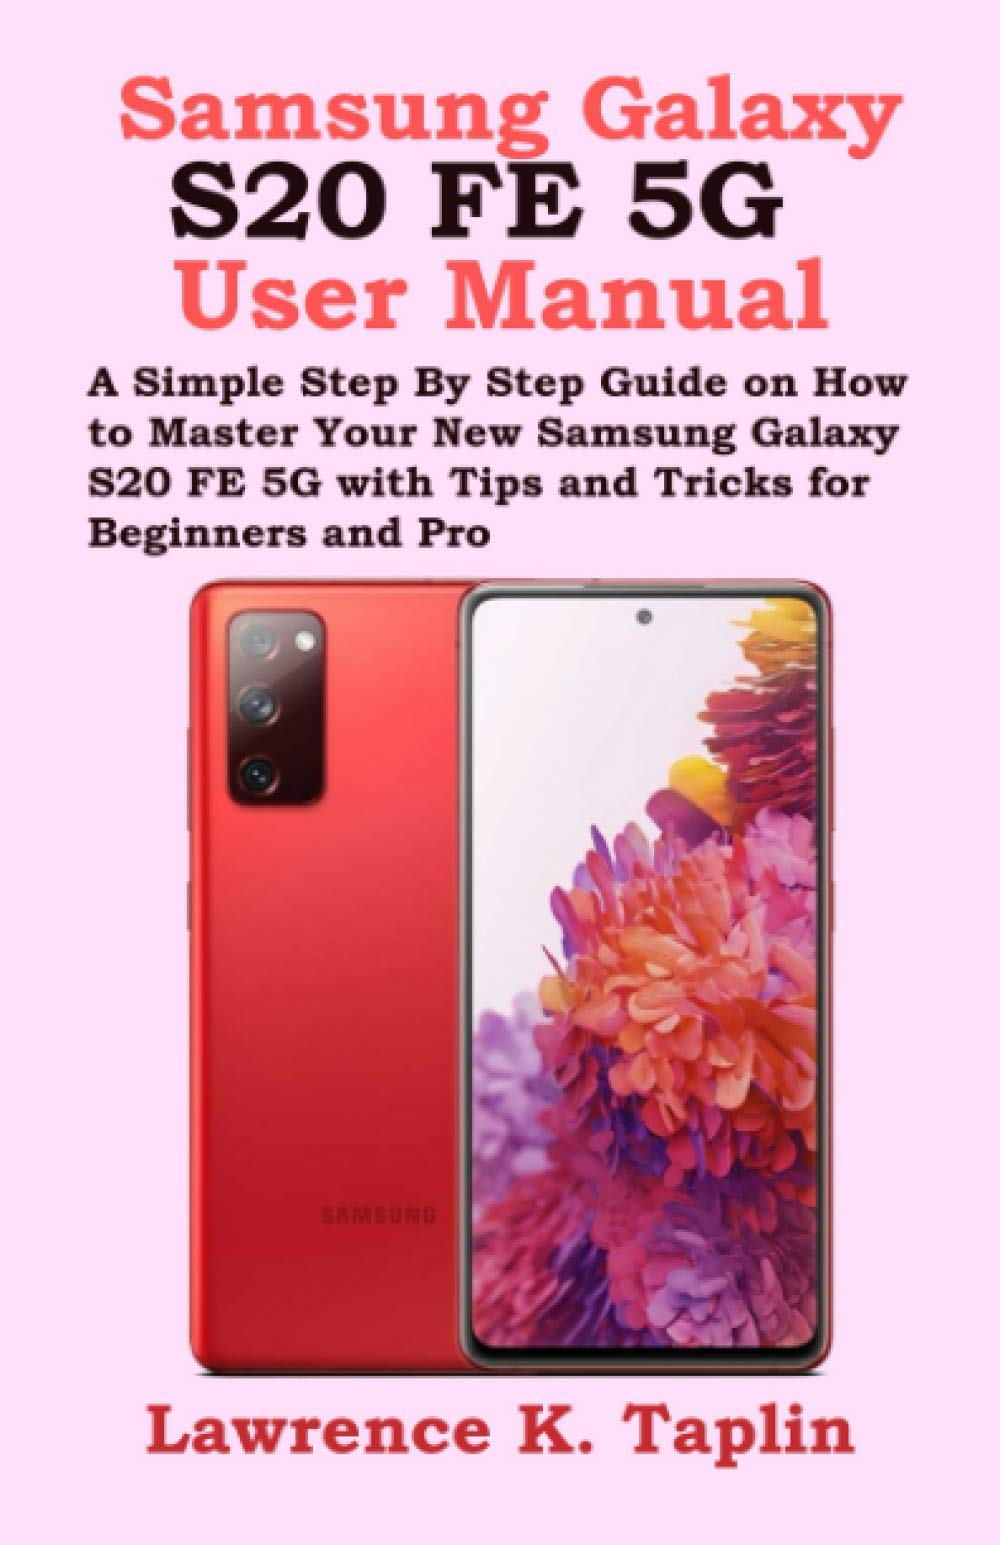 Amazon Com Samsung Galaxy S20 Fe 5g User Manual A Simple Step By Step Guide On How To Master Your New Samsung Galaxy S20 Fe 5g With Tips And Tricks For Beginners And